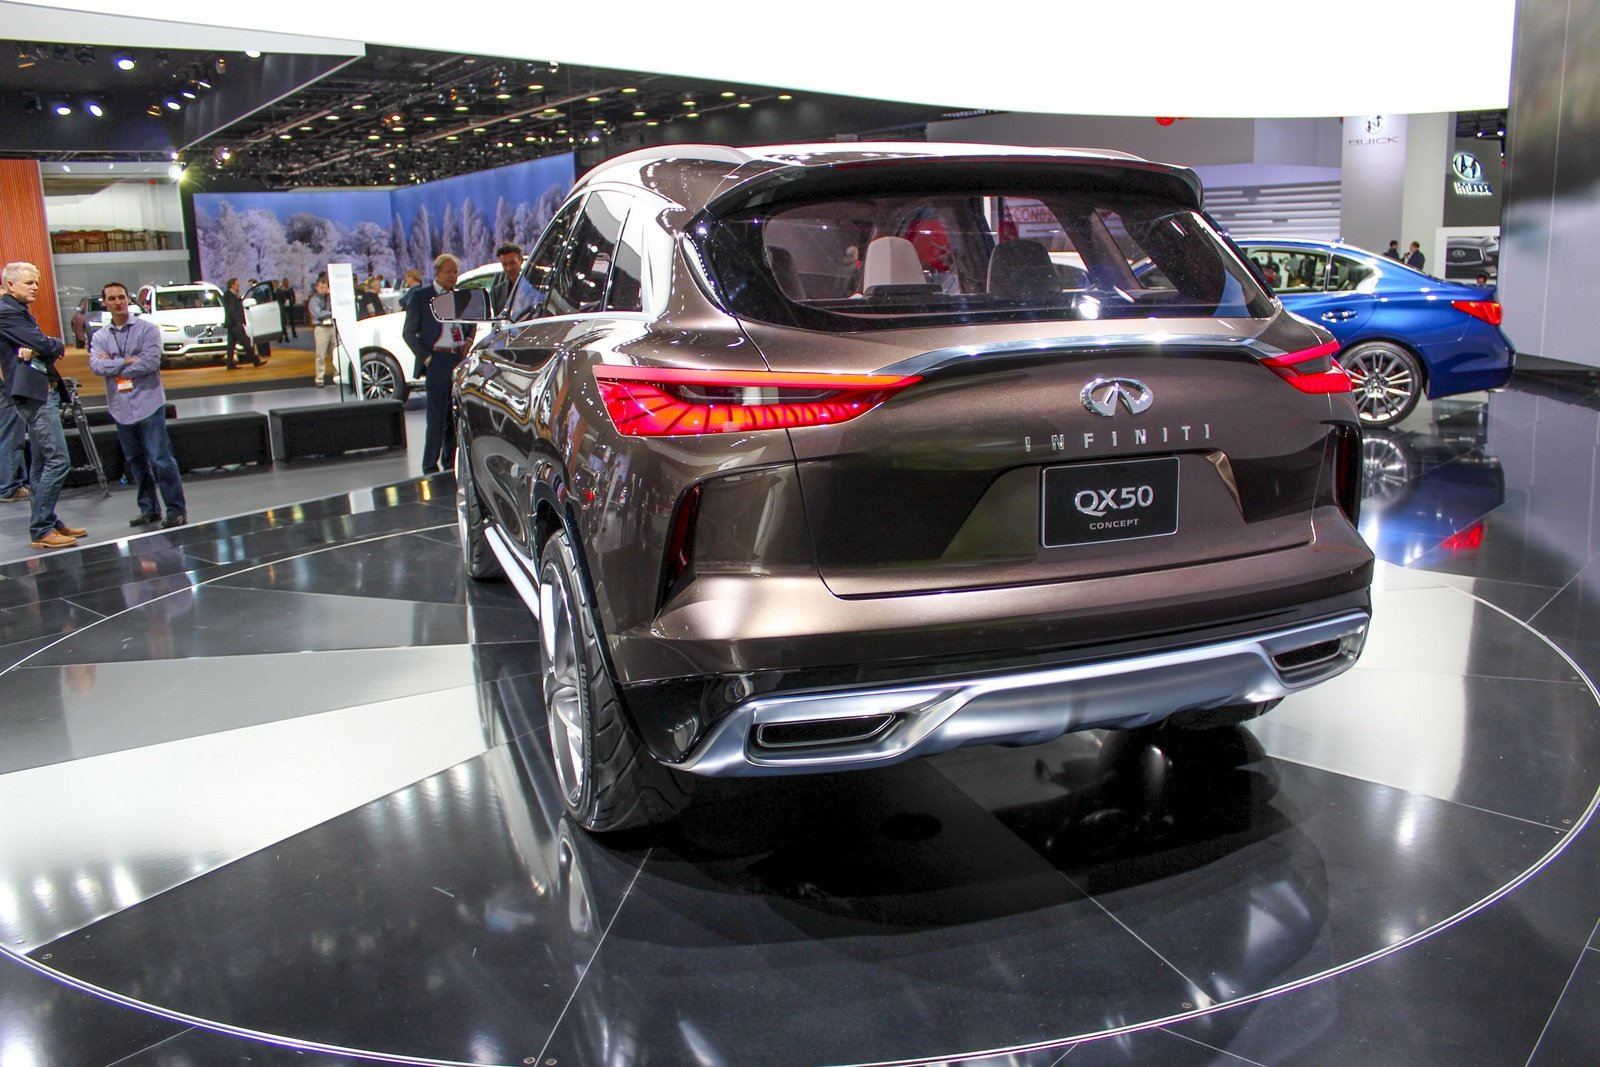 2017 infiniti qx50 concept picture 702017 car review top speed. Black Bedroom Furniture Sets. Home Design Ideas